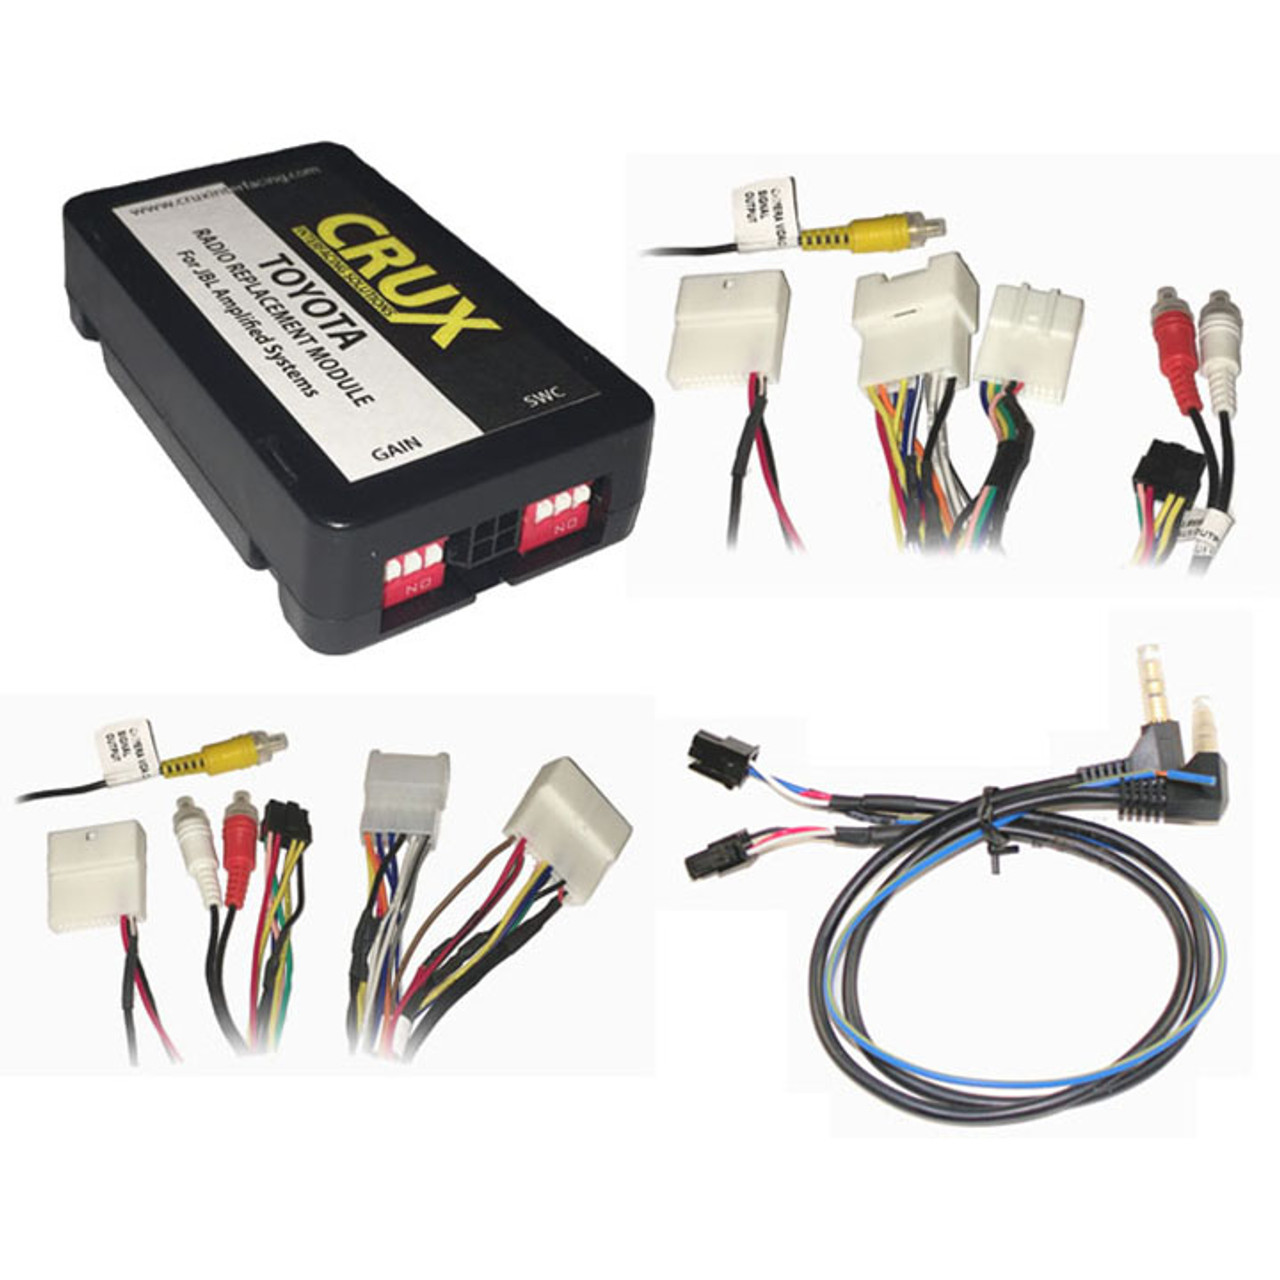 Crux SOHTL20 Radio Replacemnet For Toyota /& Lexus Vehicles w//Jbl Sound Systems